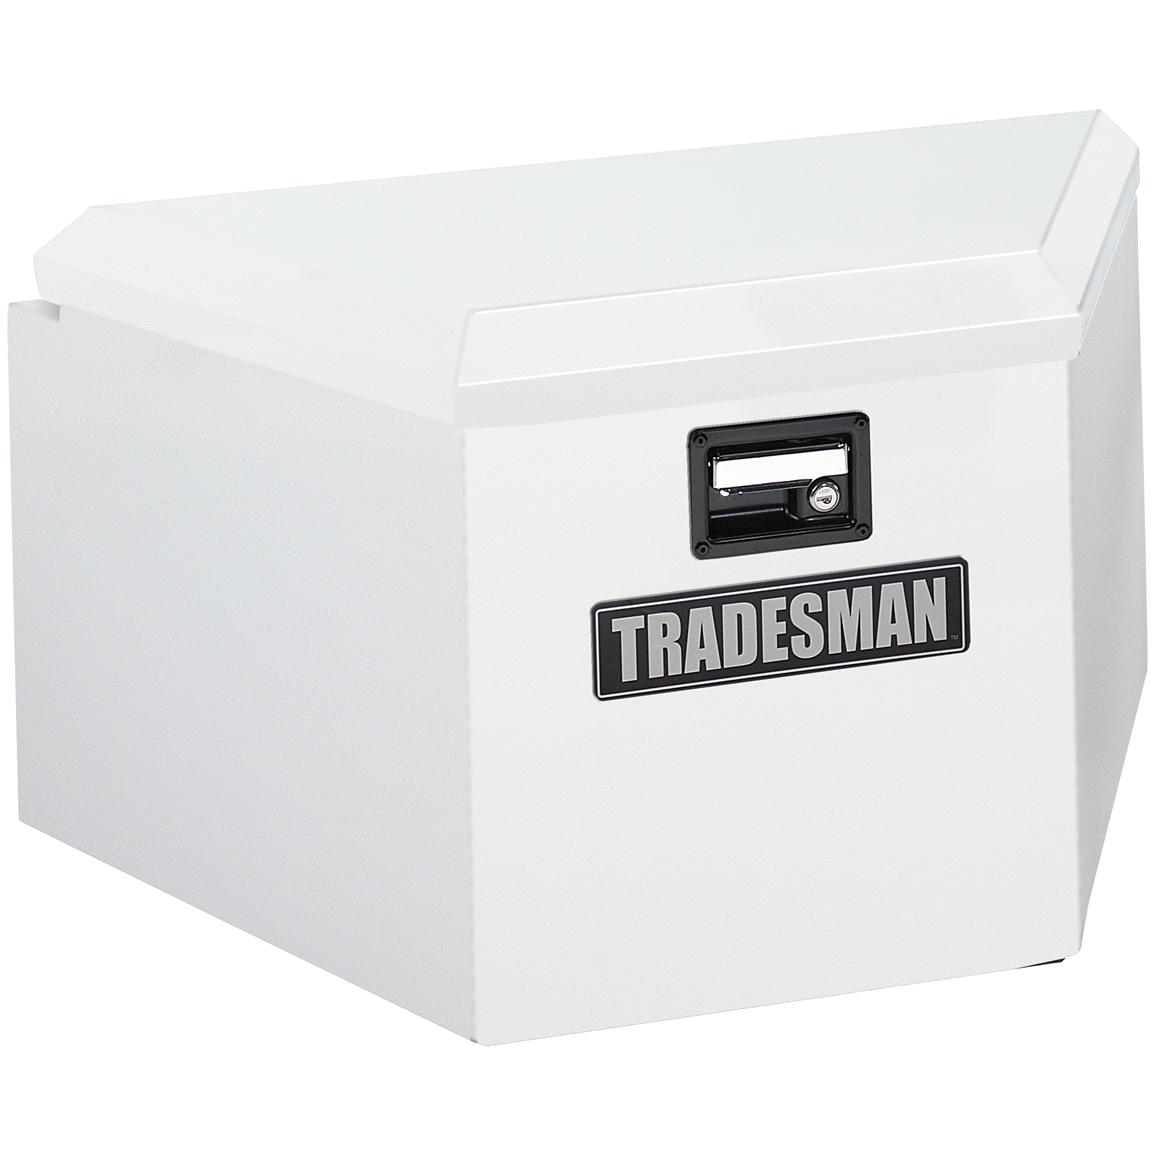 Tradesman® Steel Trailer Tongue Box, White